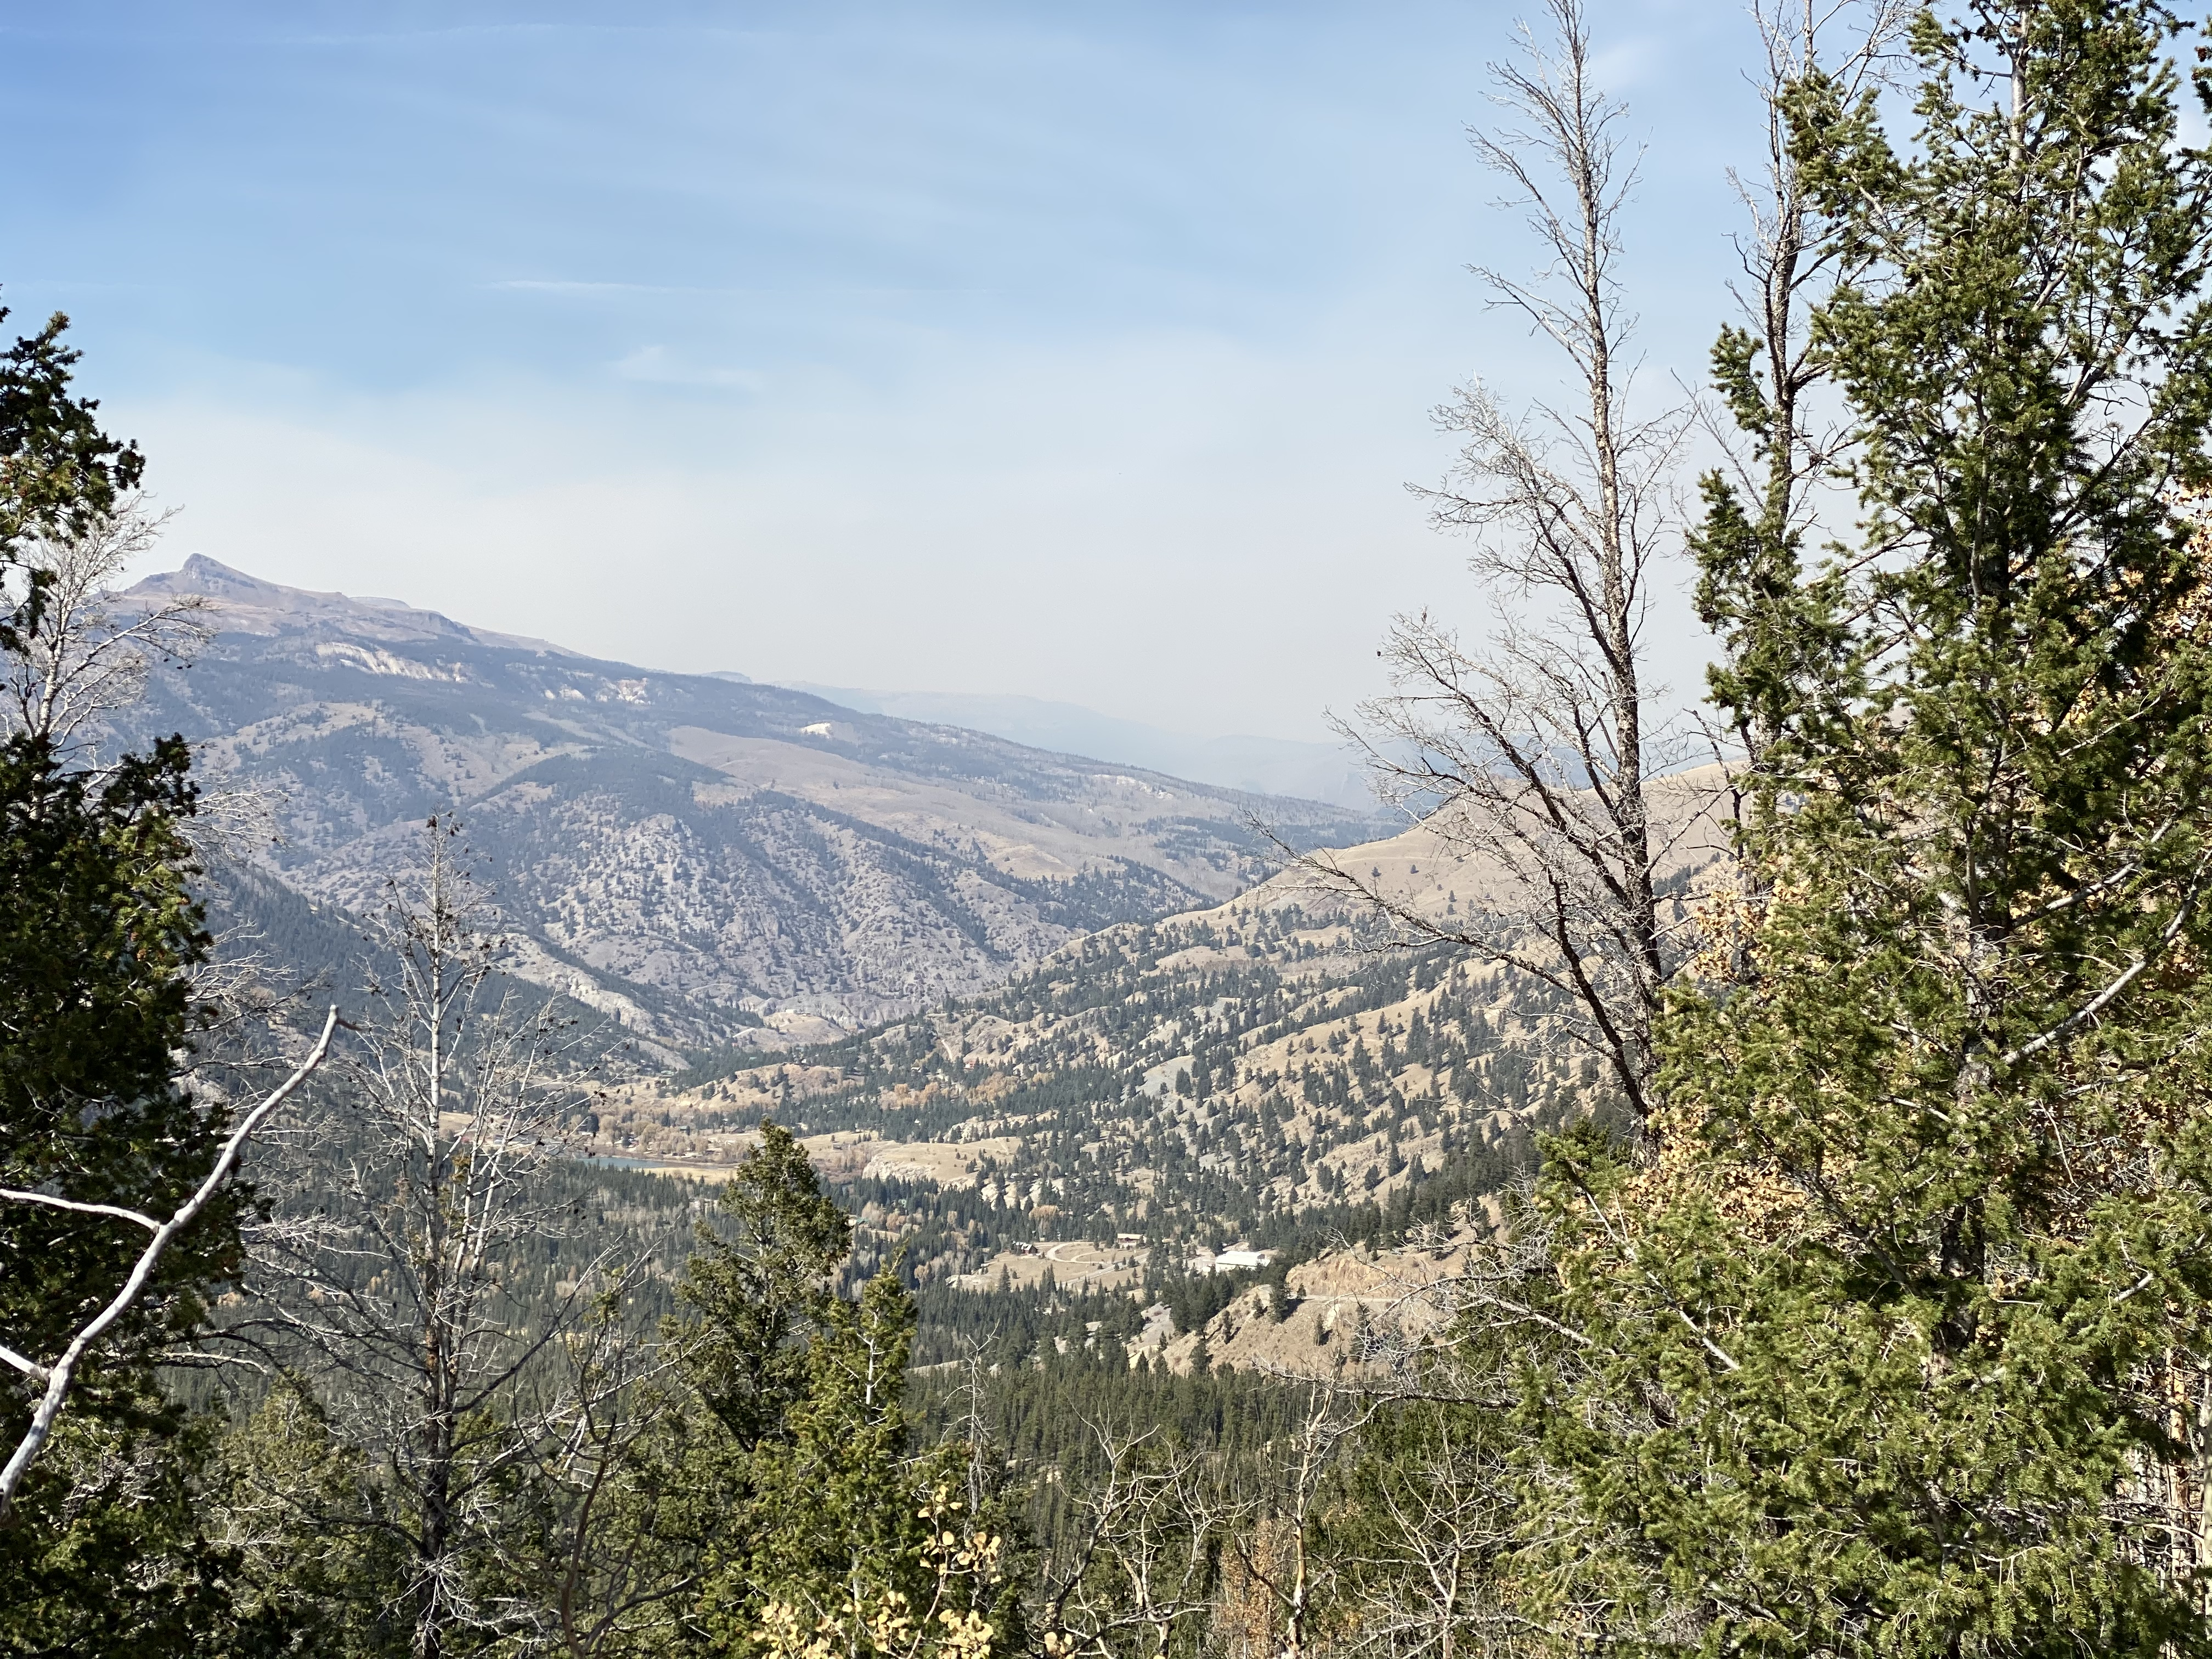 Wildfire smoke as seen from the Lake San Cristobal overlook on CO149.